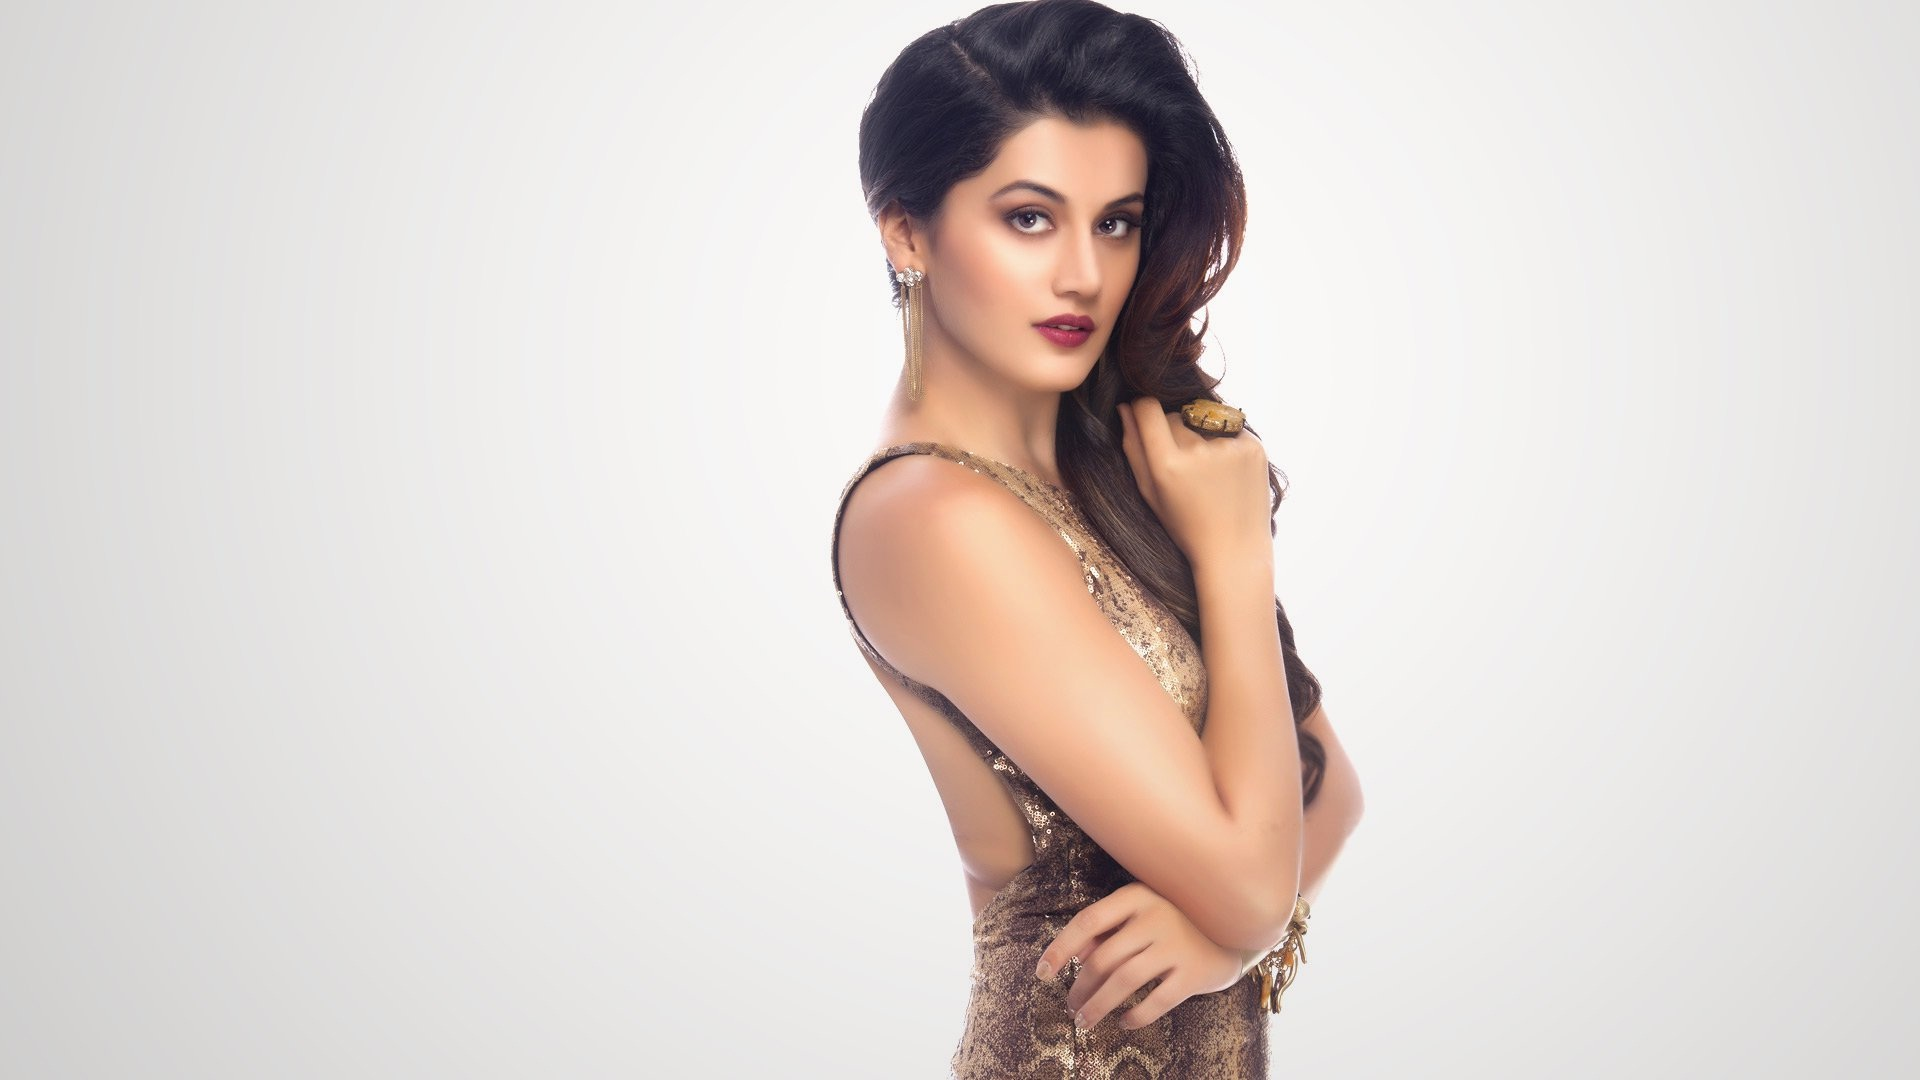 1920x1080 - Tapsee pannu Wallpapers 13